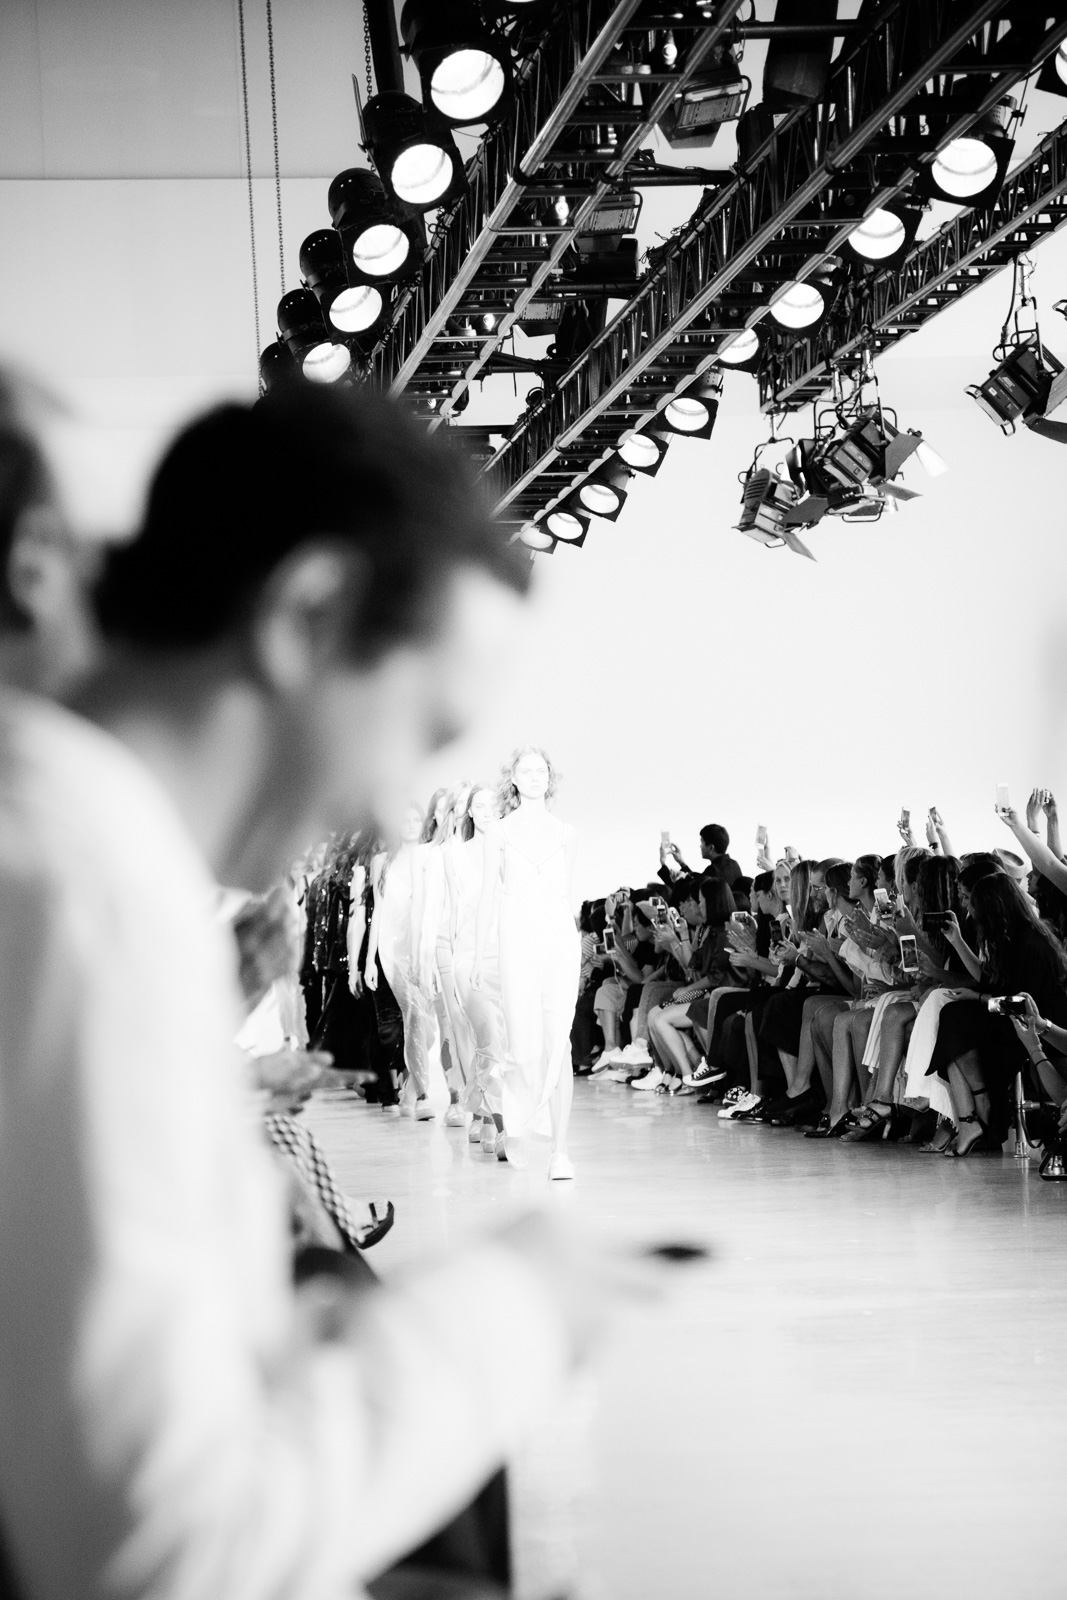 Calvin Klein Spring 2016 Runway Show All Access during New York Fashion Week at Spring Studios on September 17, 2015 in New York City, USA.